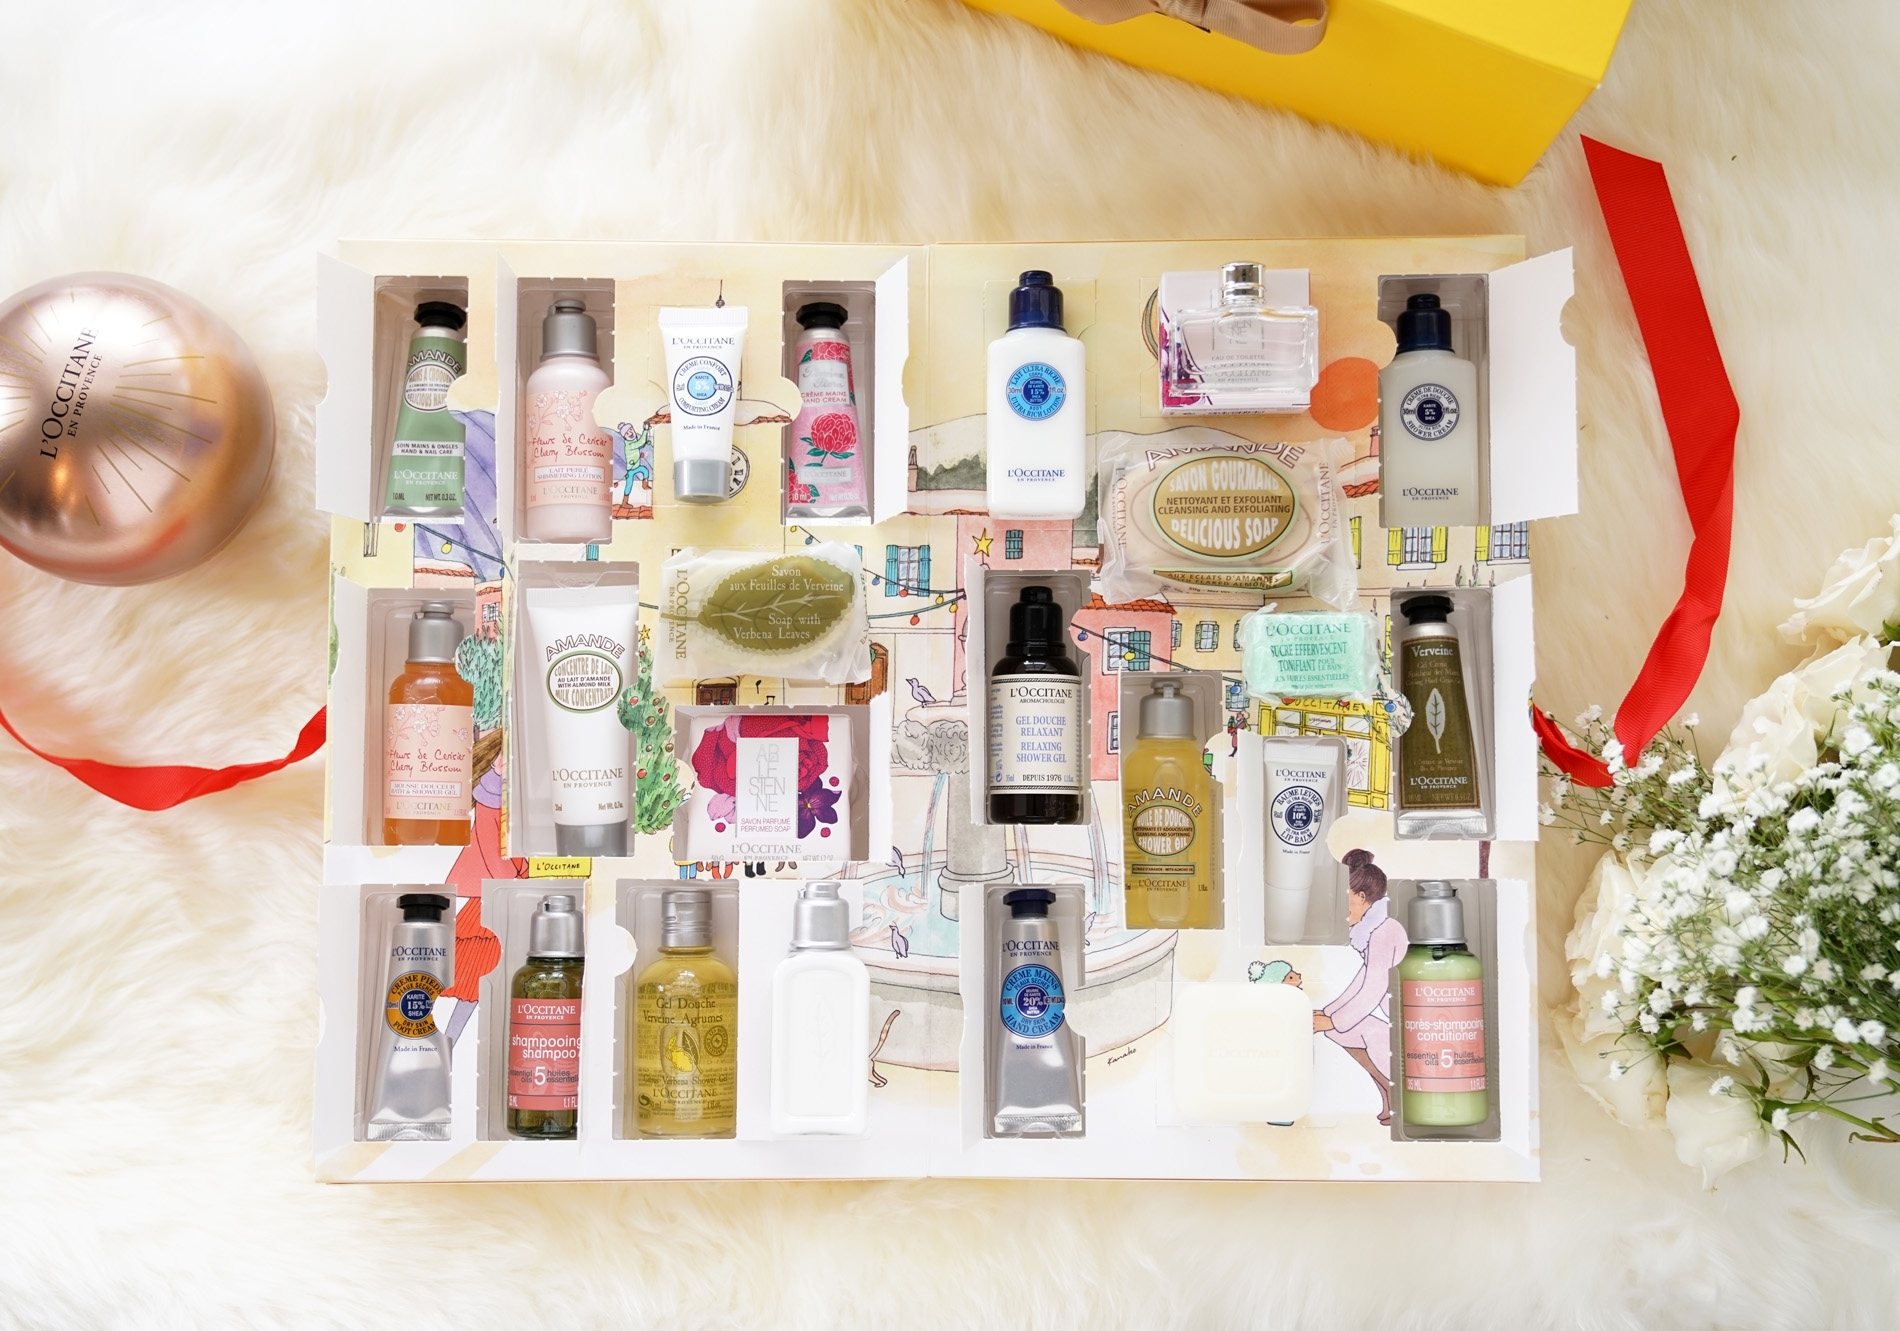 L'occitane Holiday Advent Calendars - The Beauty Look Book